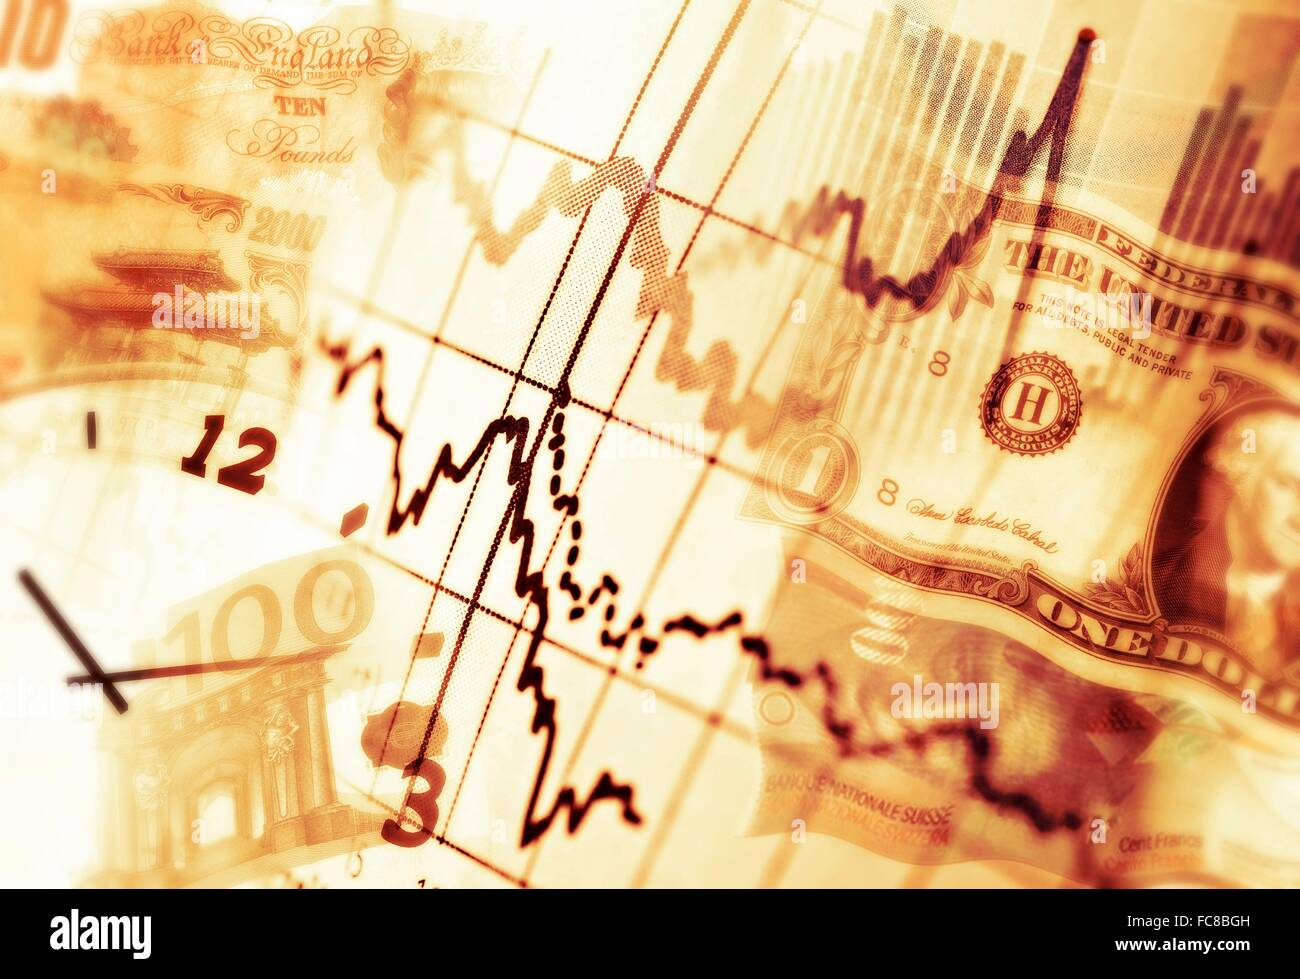 Diagrams, notes in various currencies and a clock as a symbol of the changes on the markets. - Stock Image